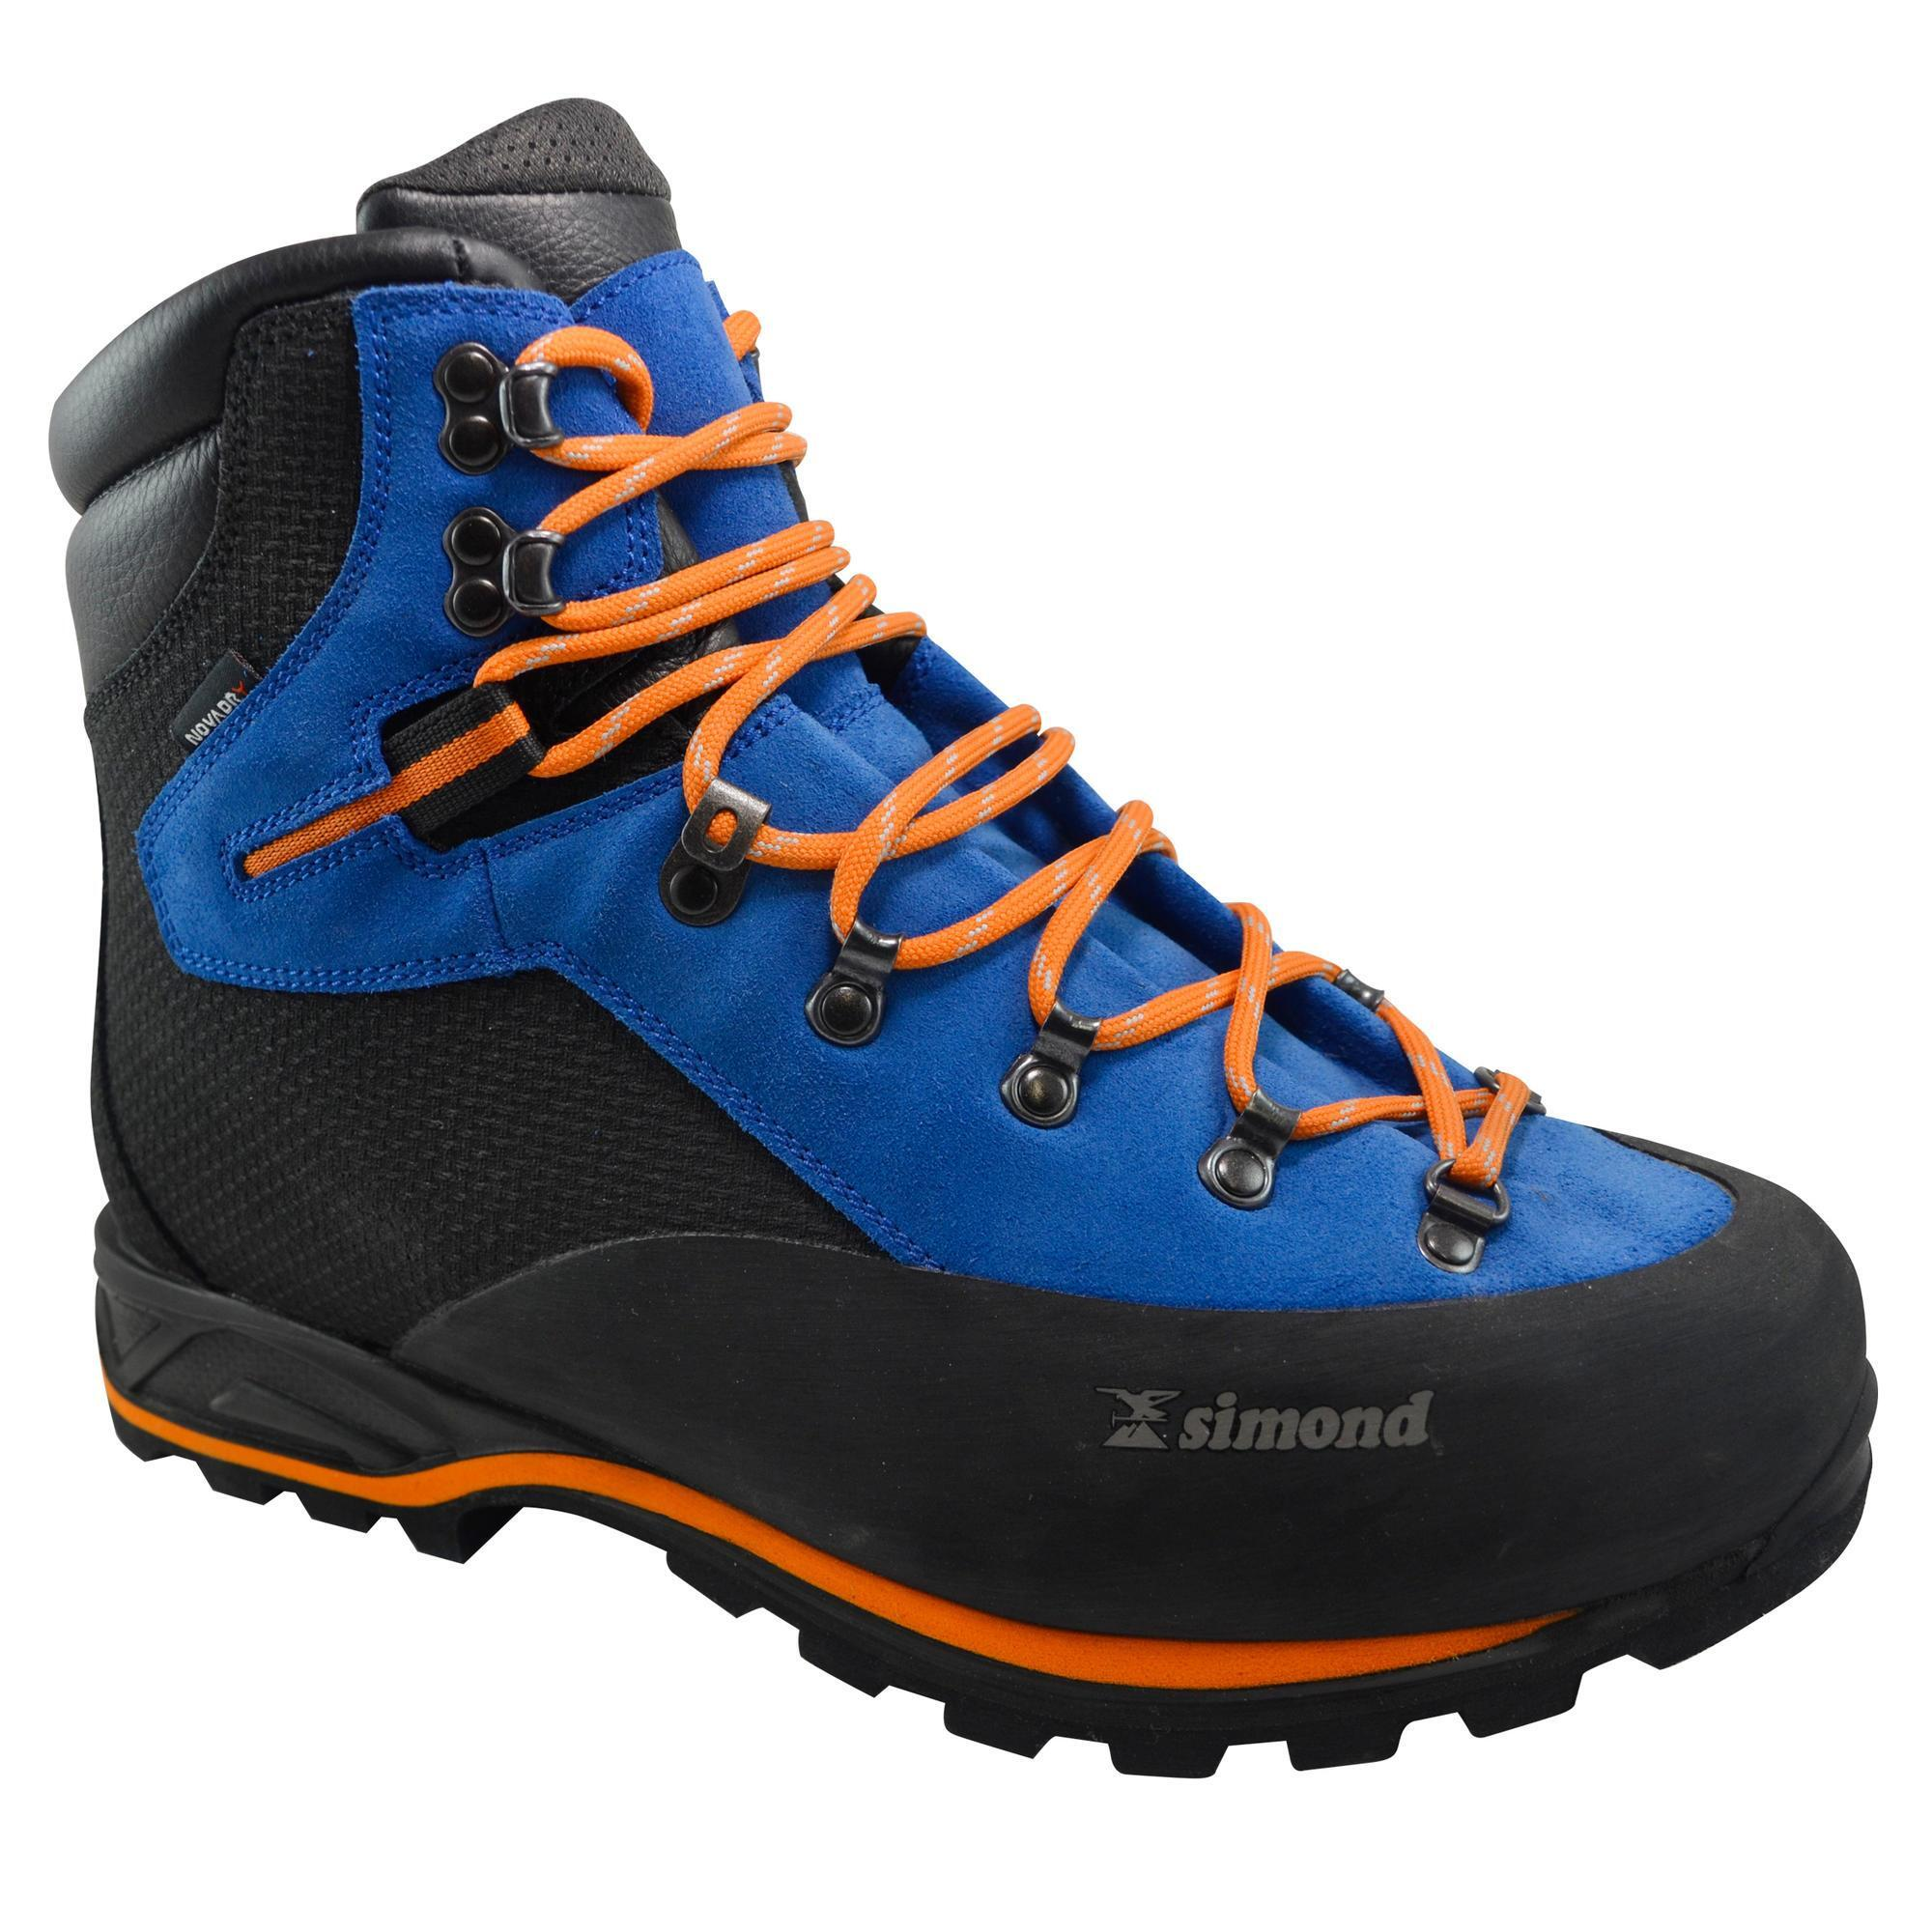 boots men most gtx garmont comfortable s ccccc from mnt hiking comforter dragontail mtn